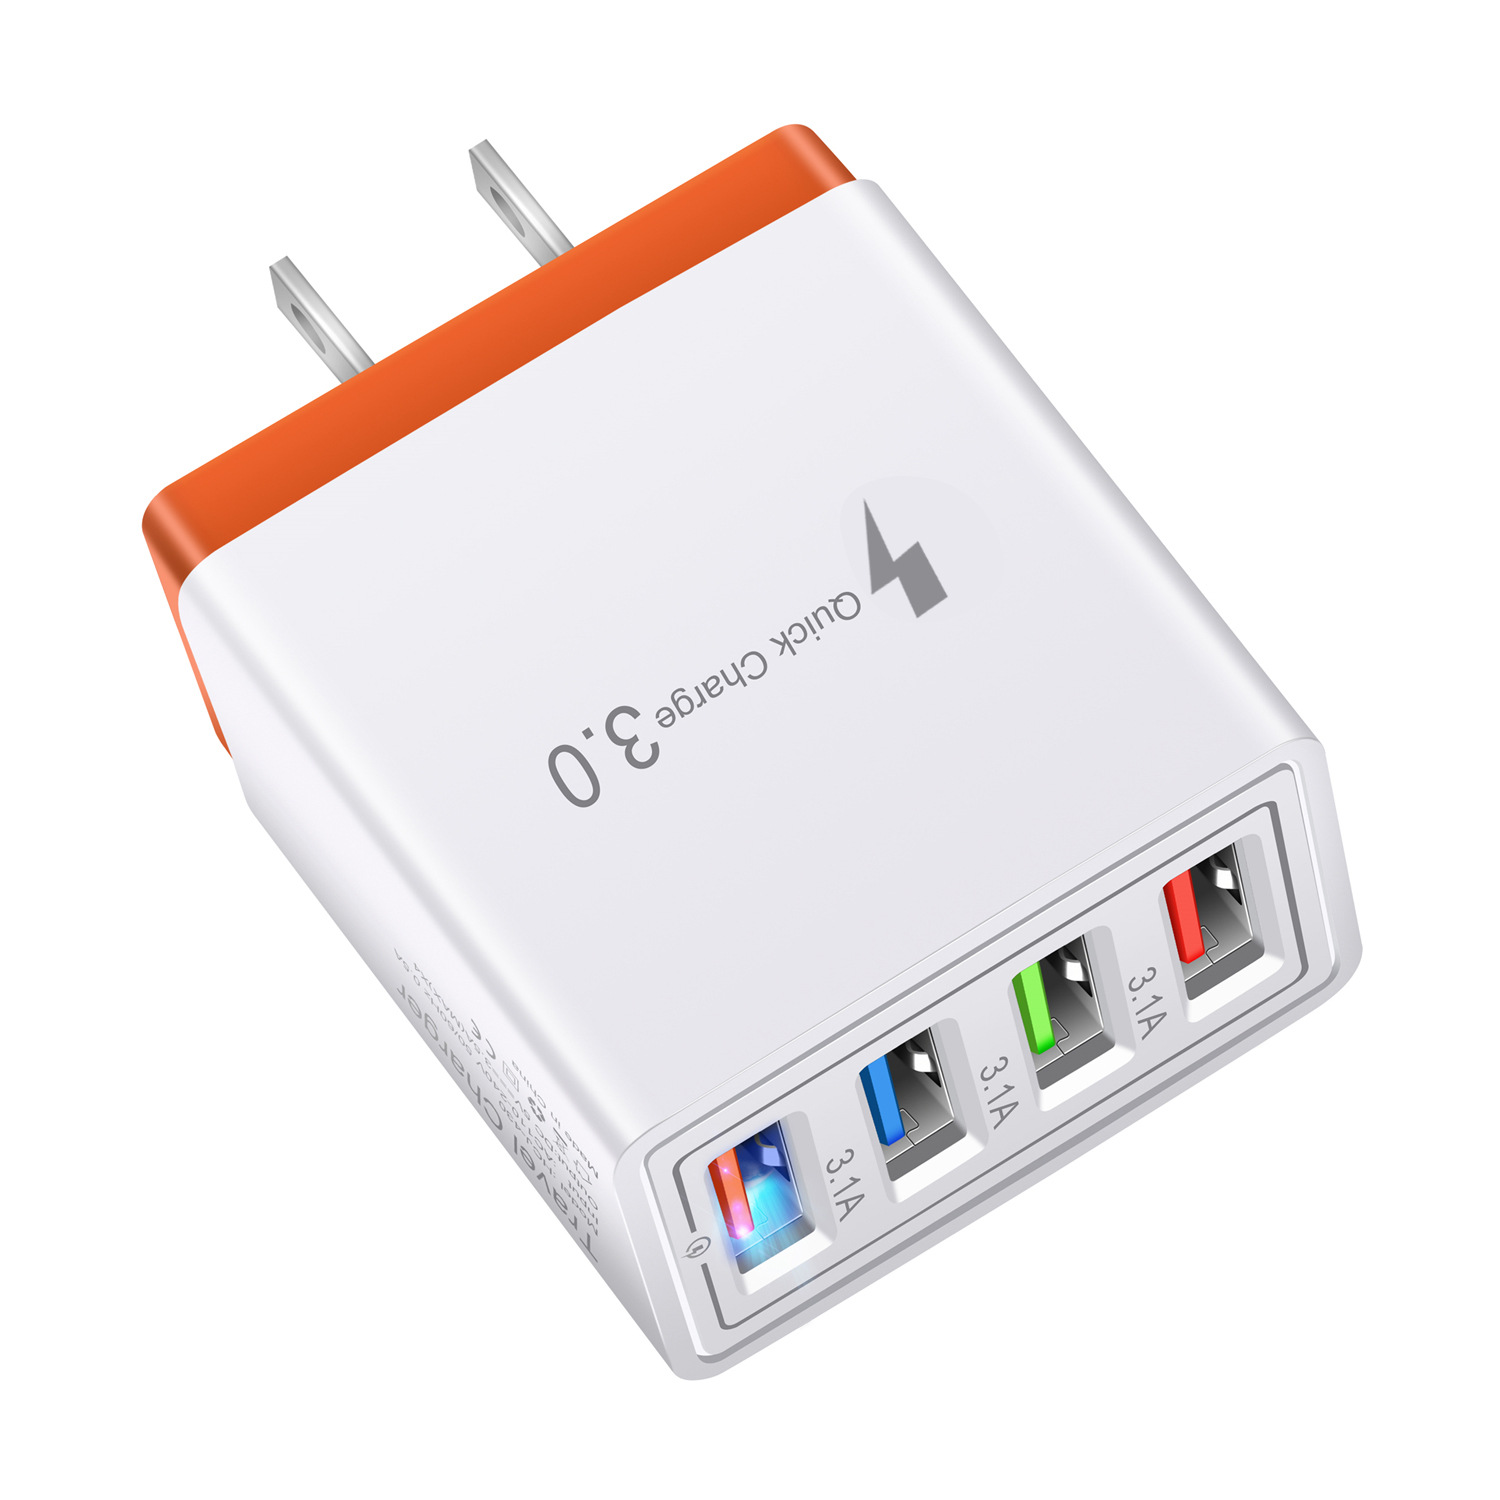 Universal Dinding Soket 4 Port USB Charger QC 3.0 Cepat Ponsel Travel Charger Dinding US/EU/UK plug Charger untuk iPhone